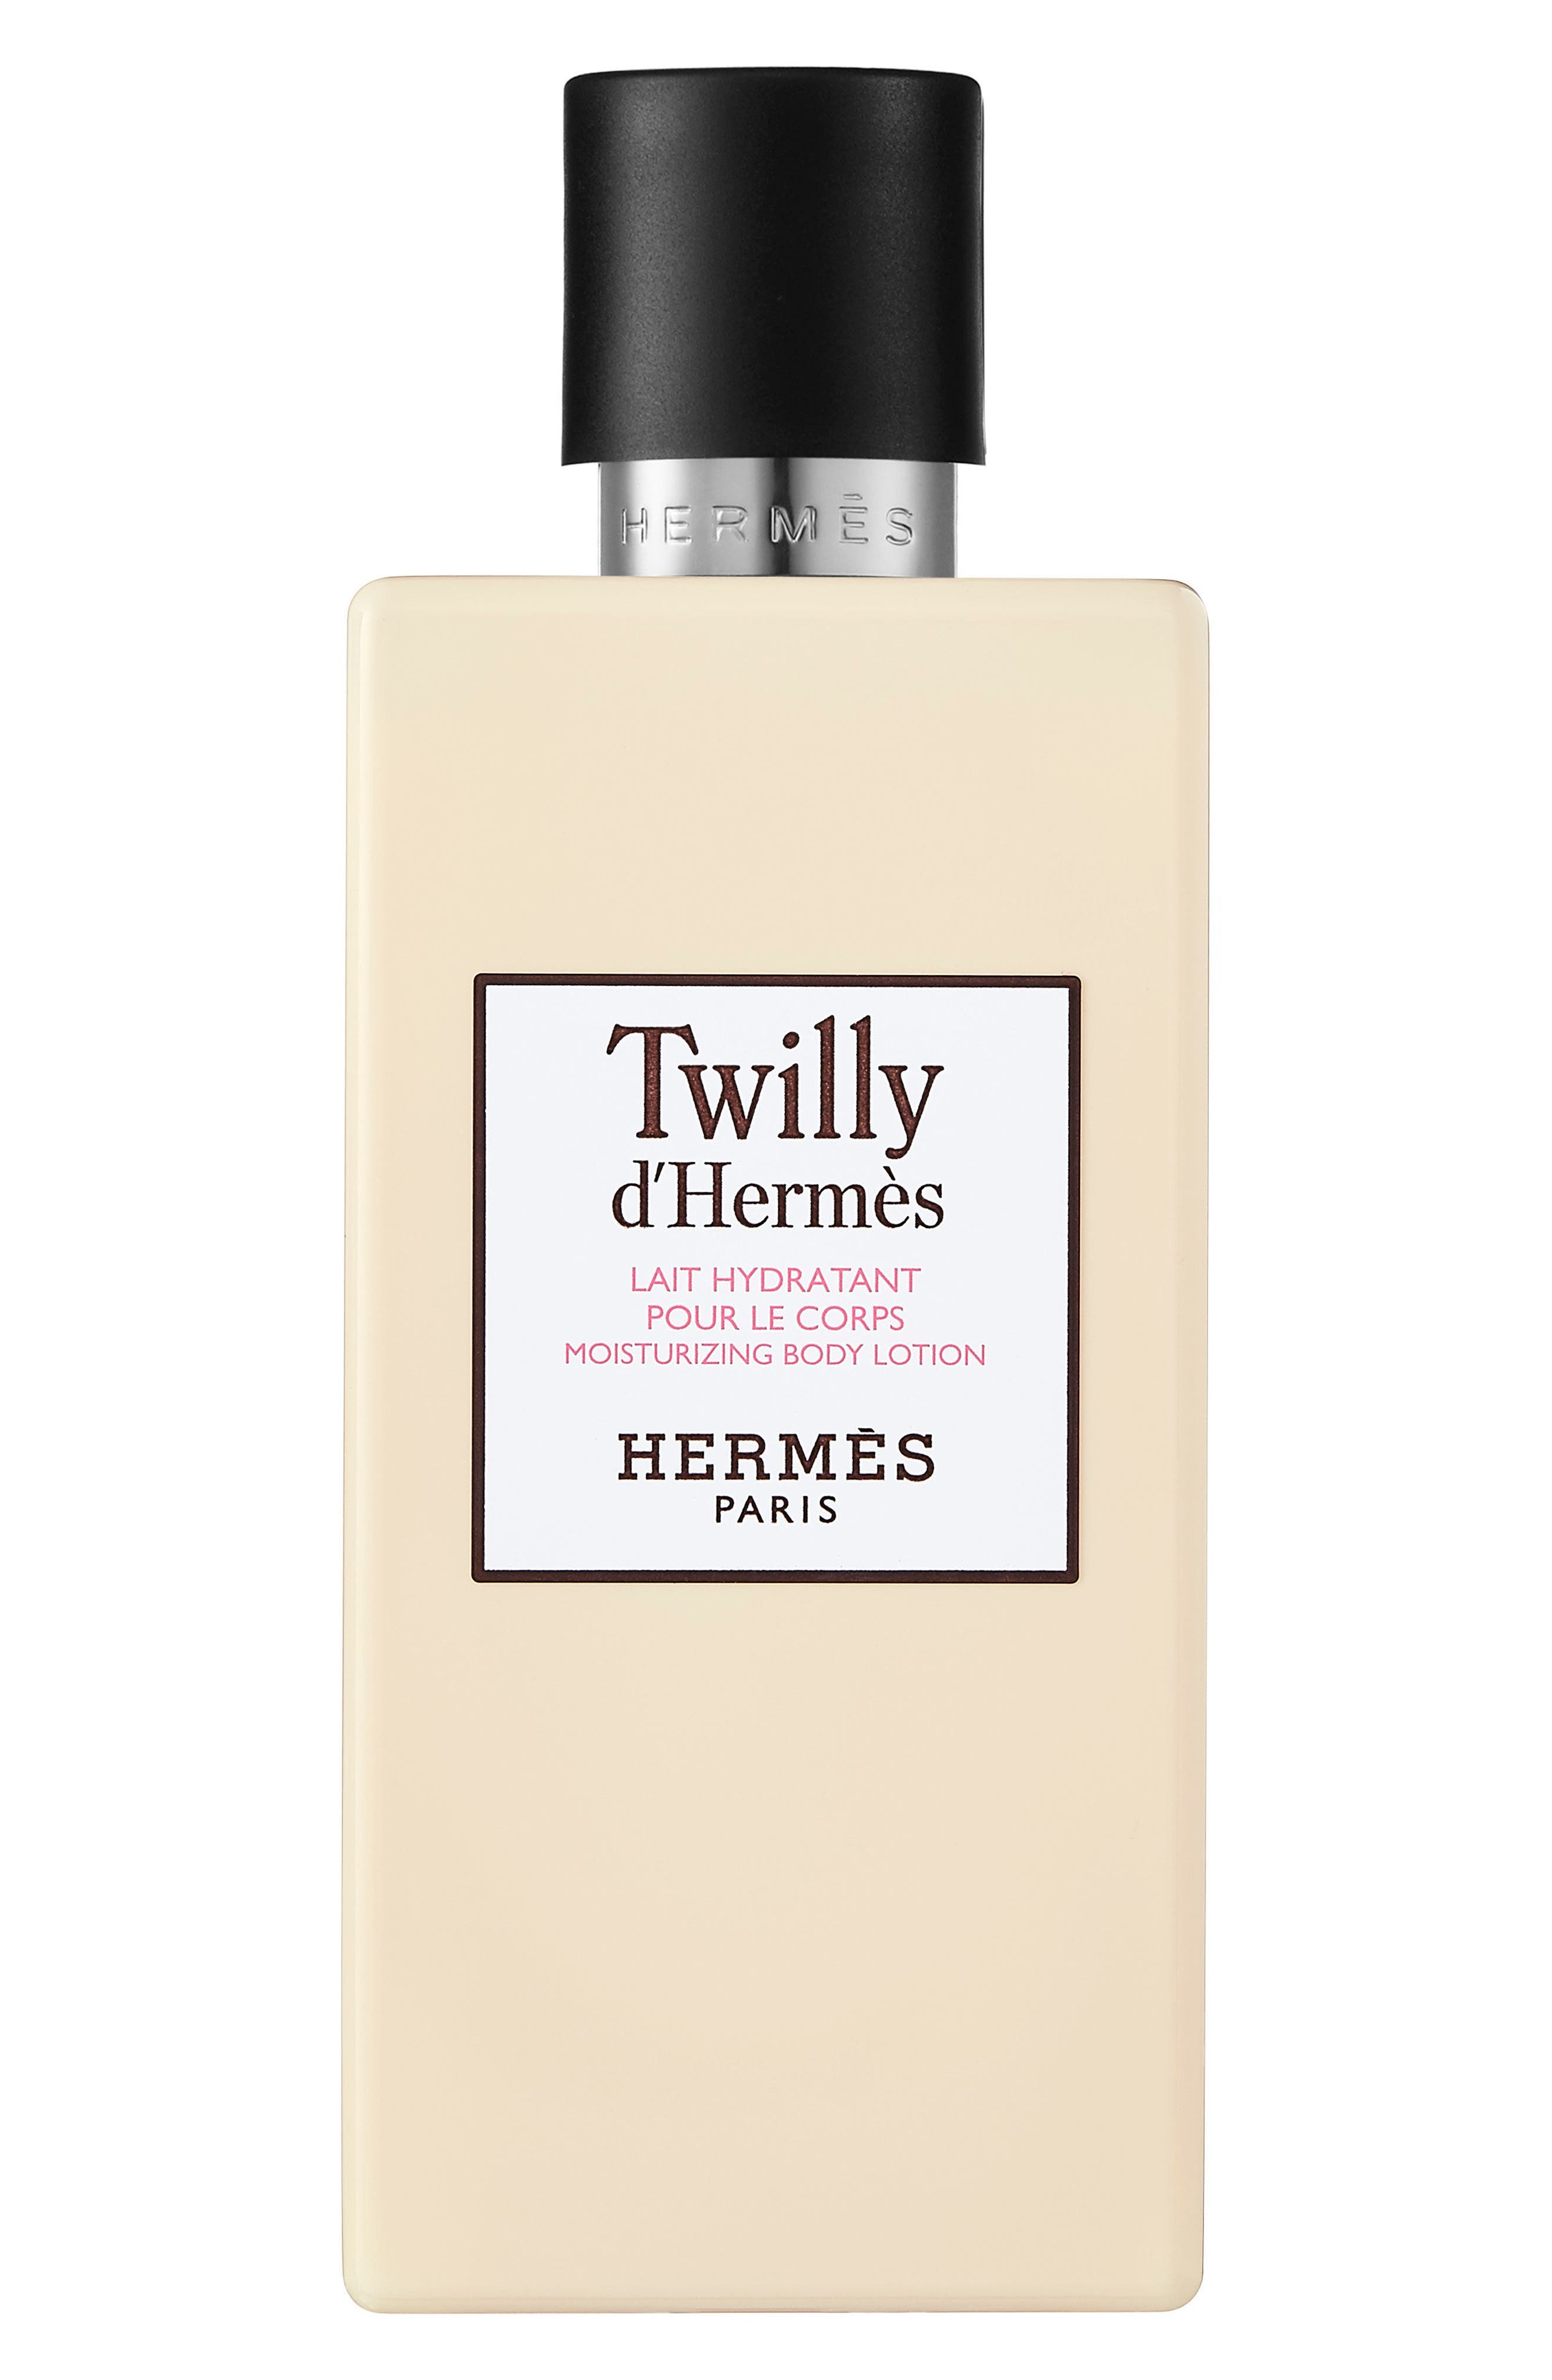 Twilly d'Hermès - Moisturizing body lotion,                             Main thumbnail 1, color,                             No Color